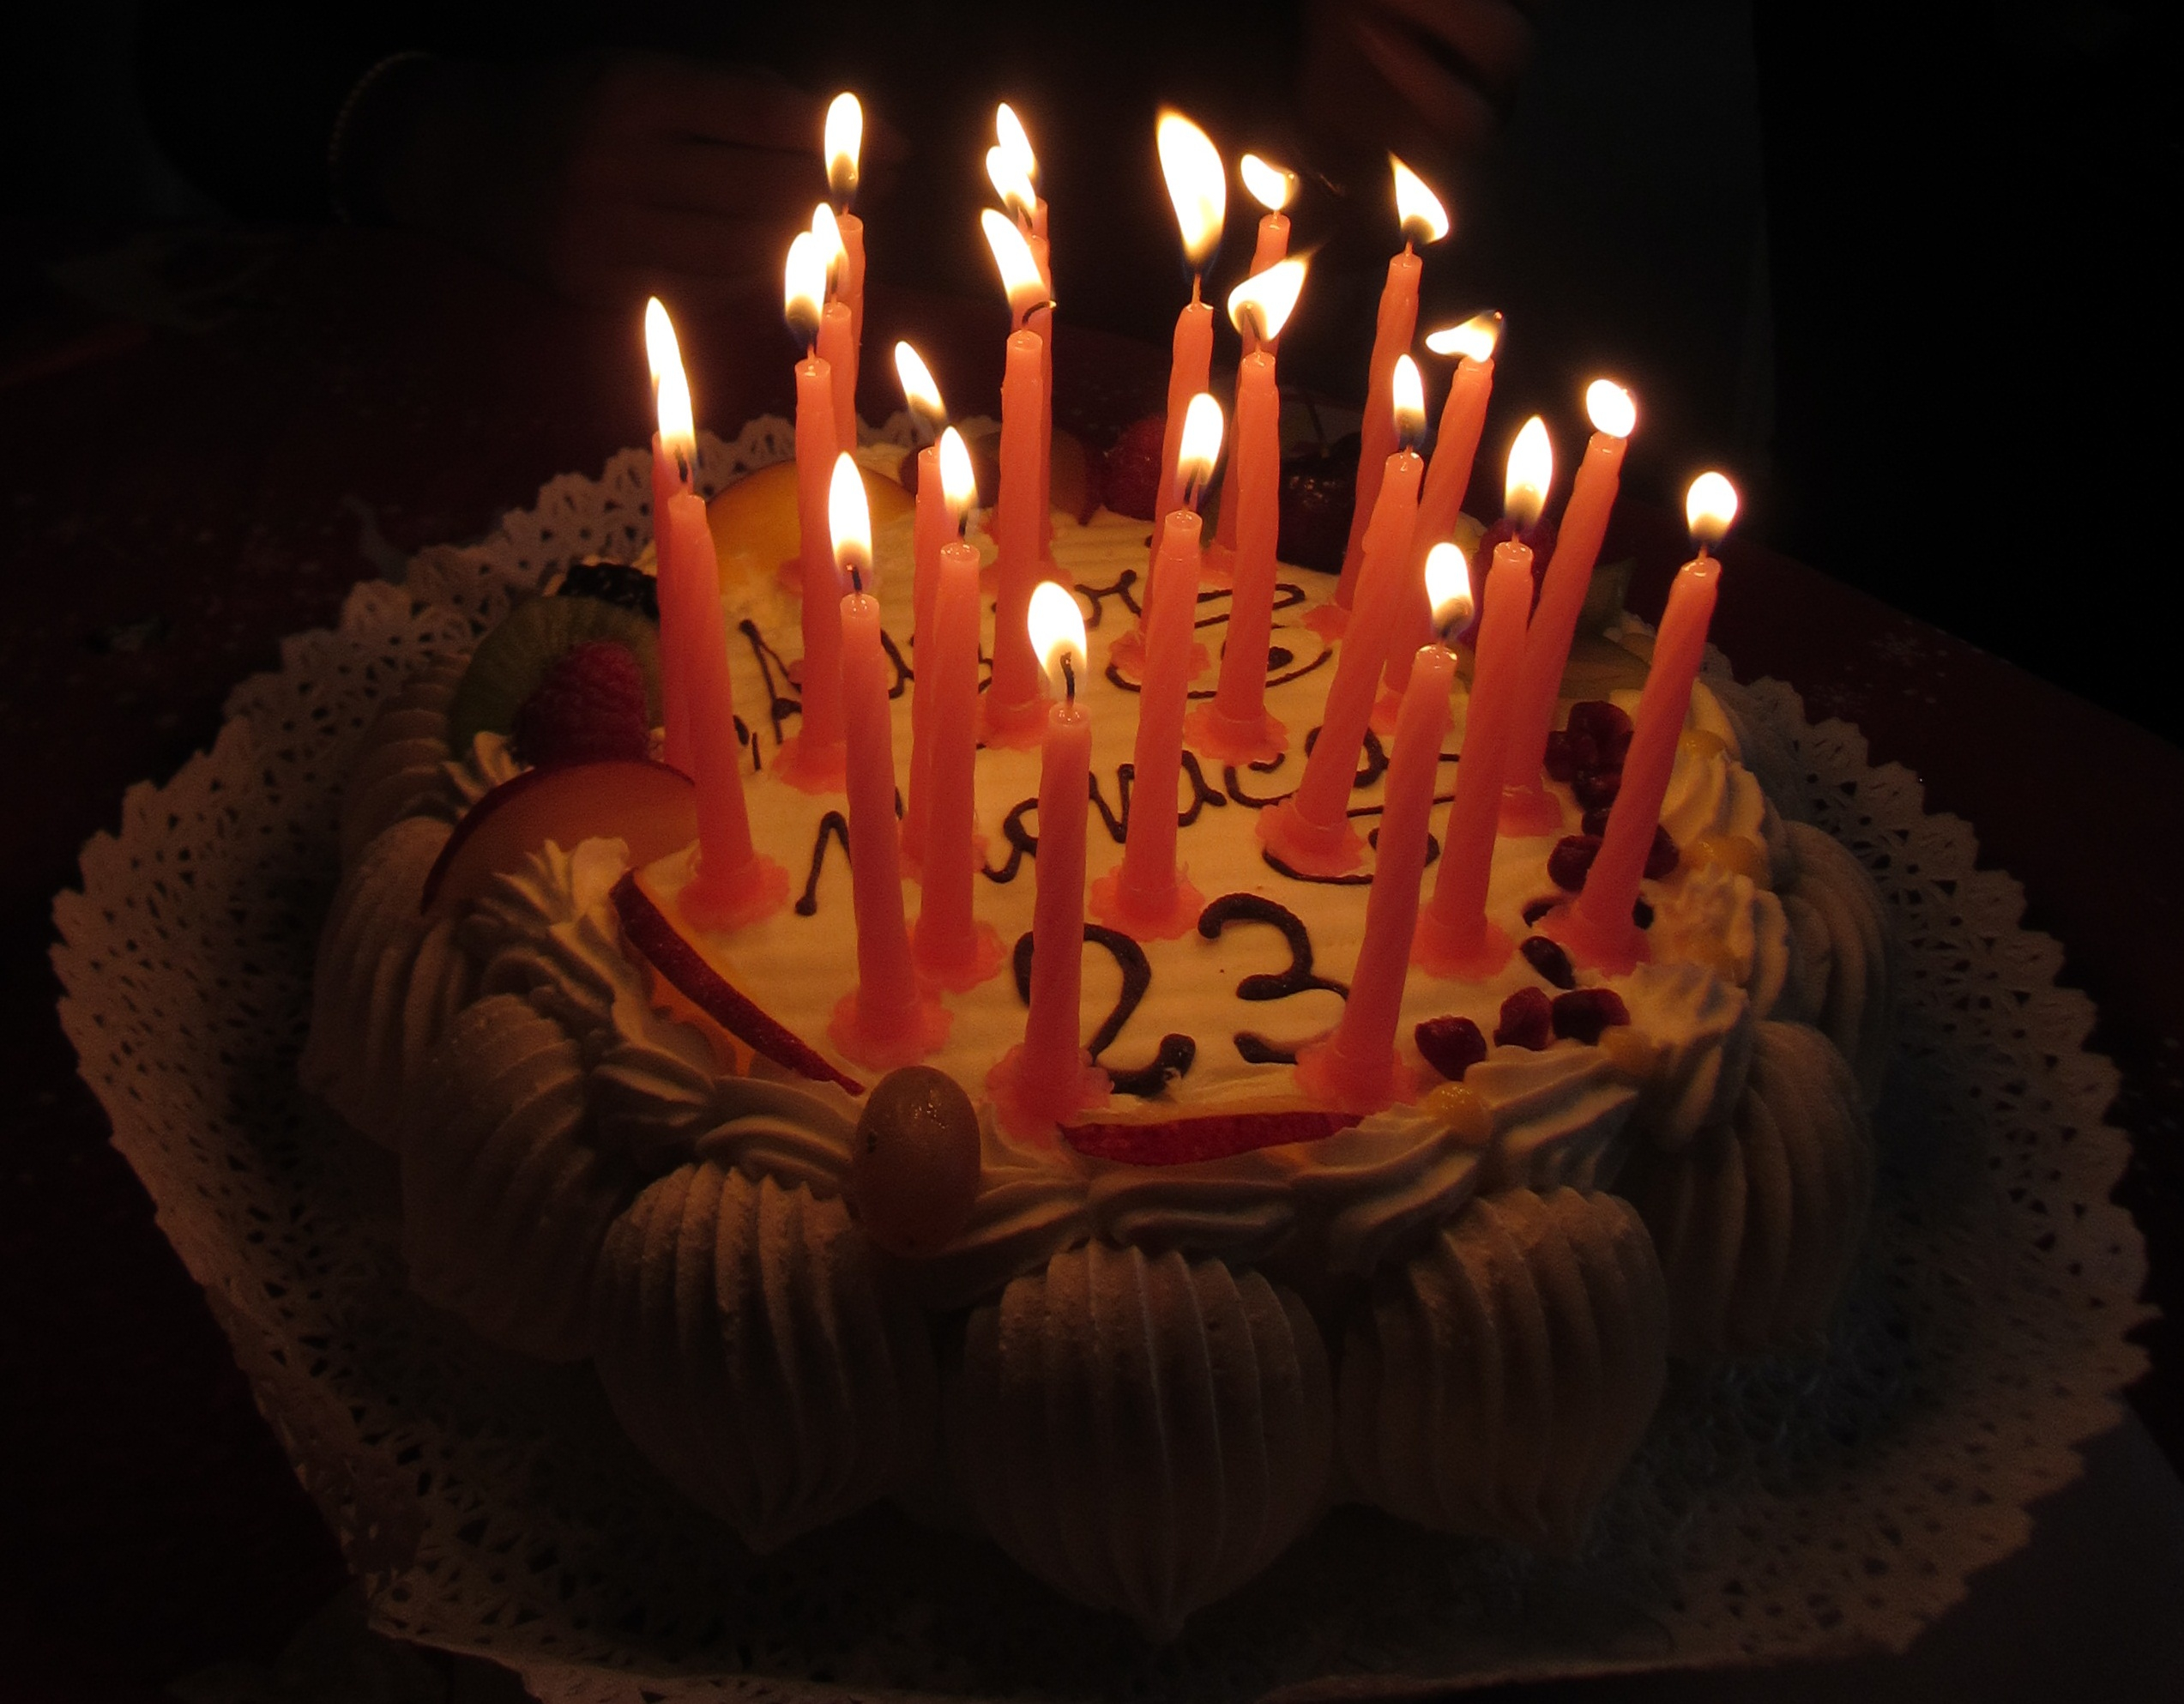 Birthday Cakes With Candles Fileitaly Birthday Cake With Candles 4 Wikimedia Commons